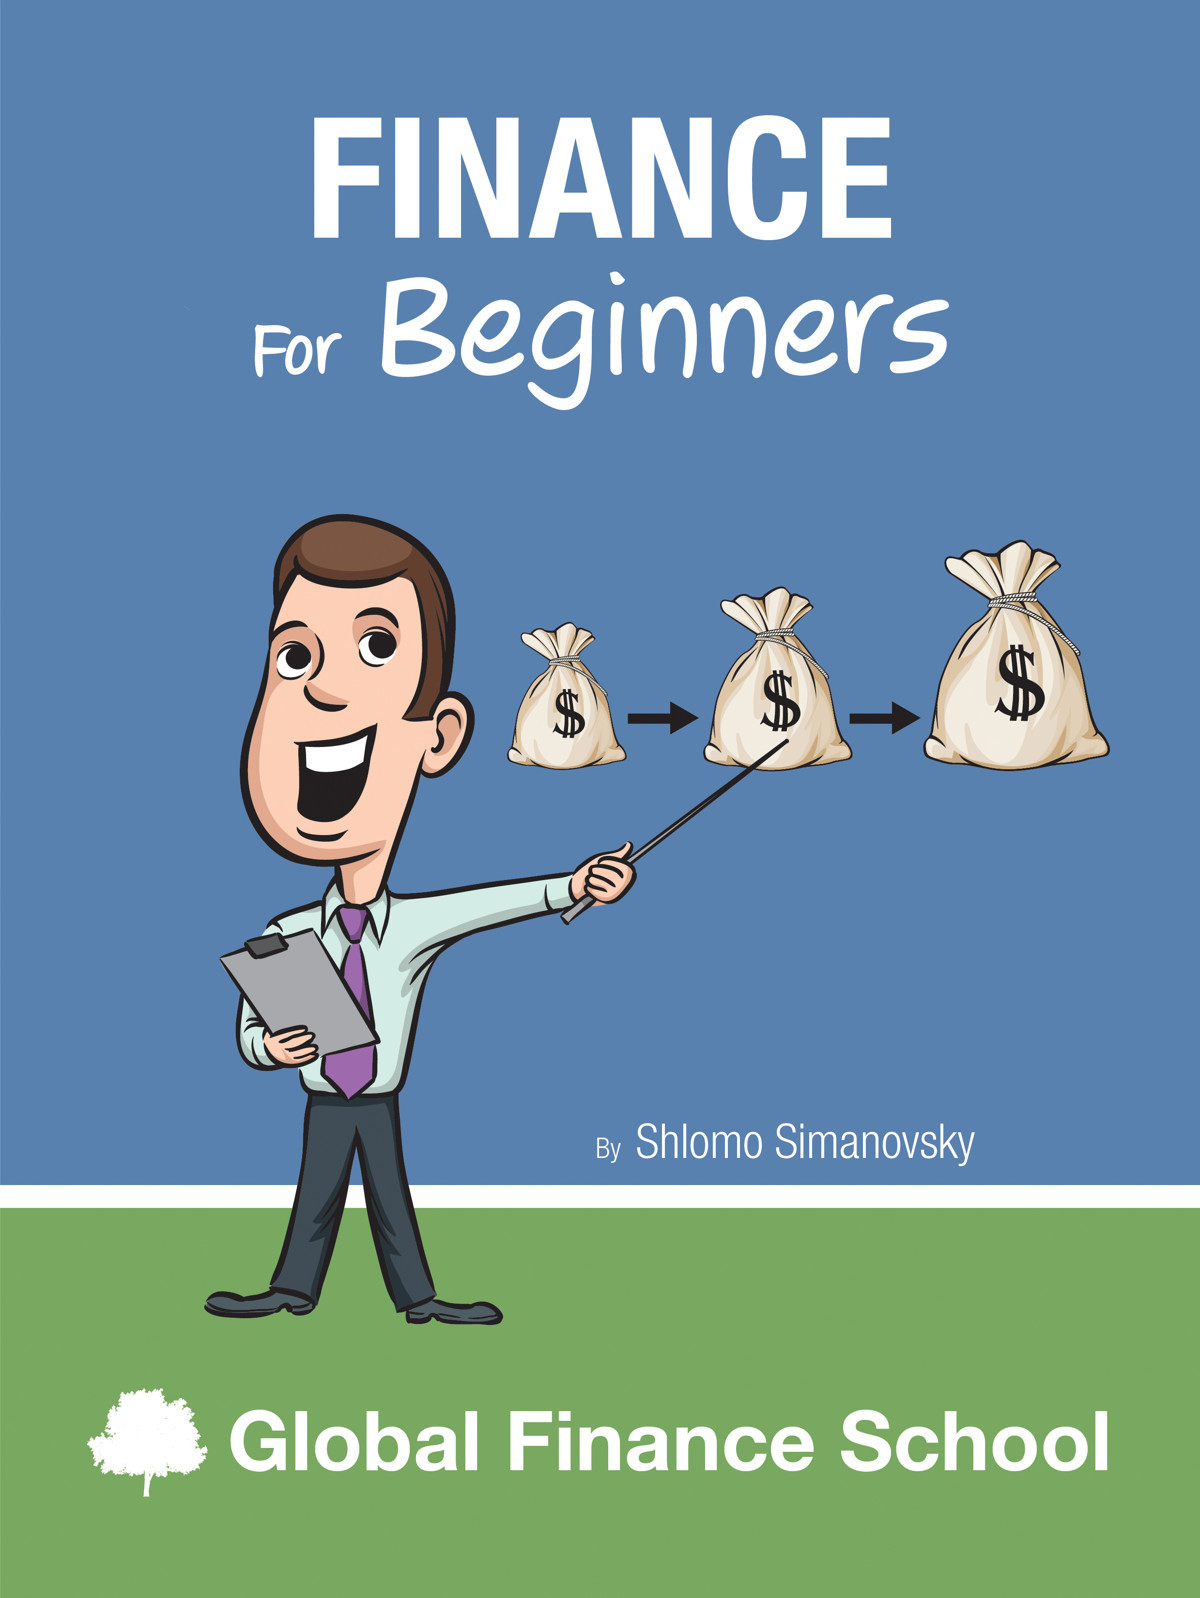 Finance for Beginners